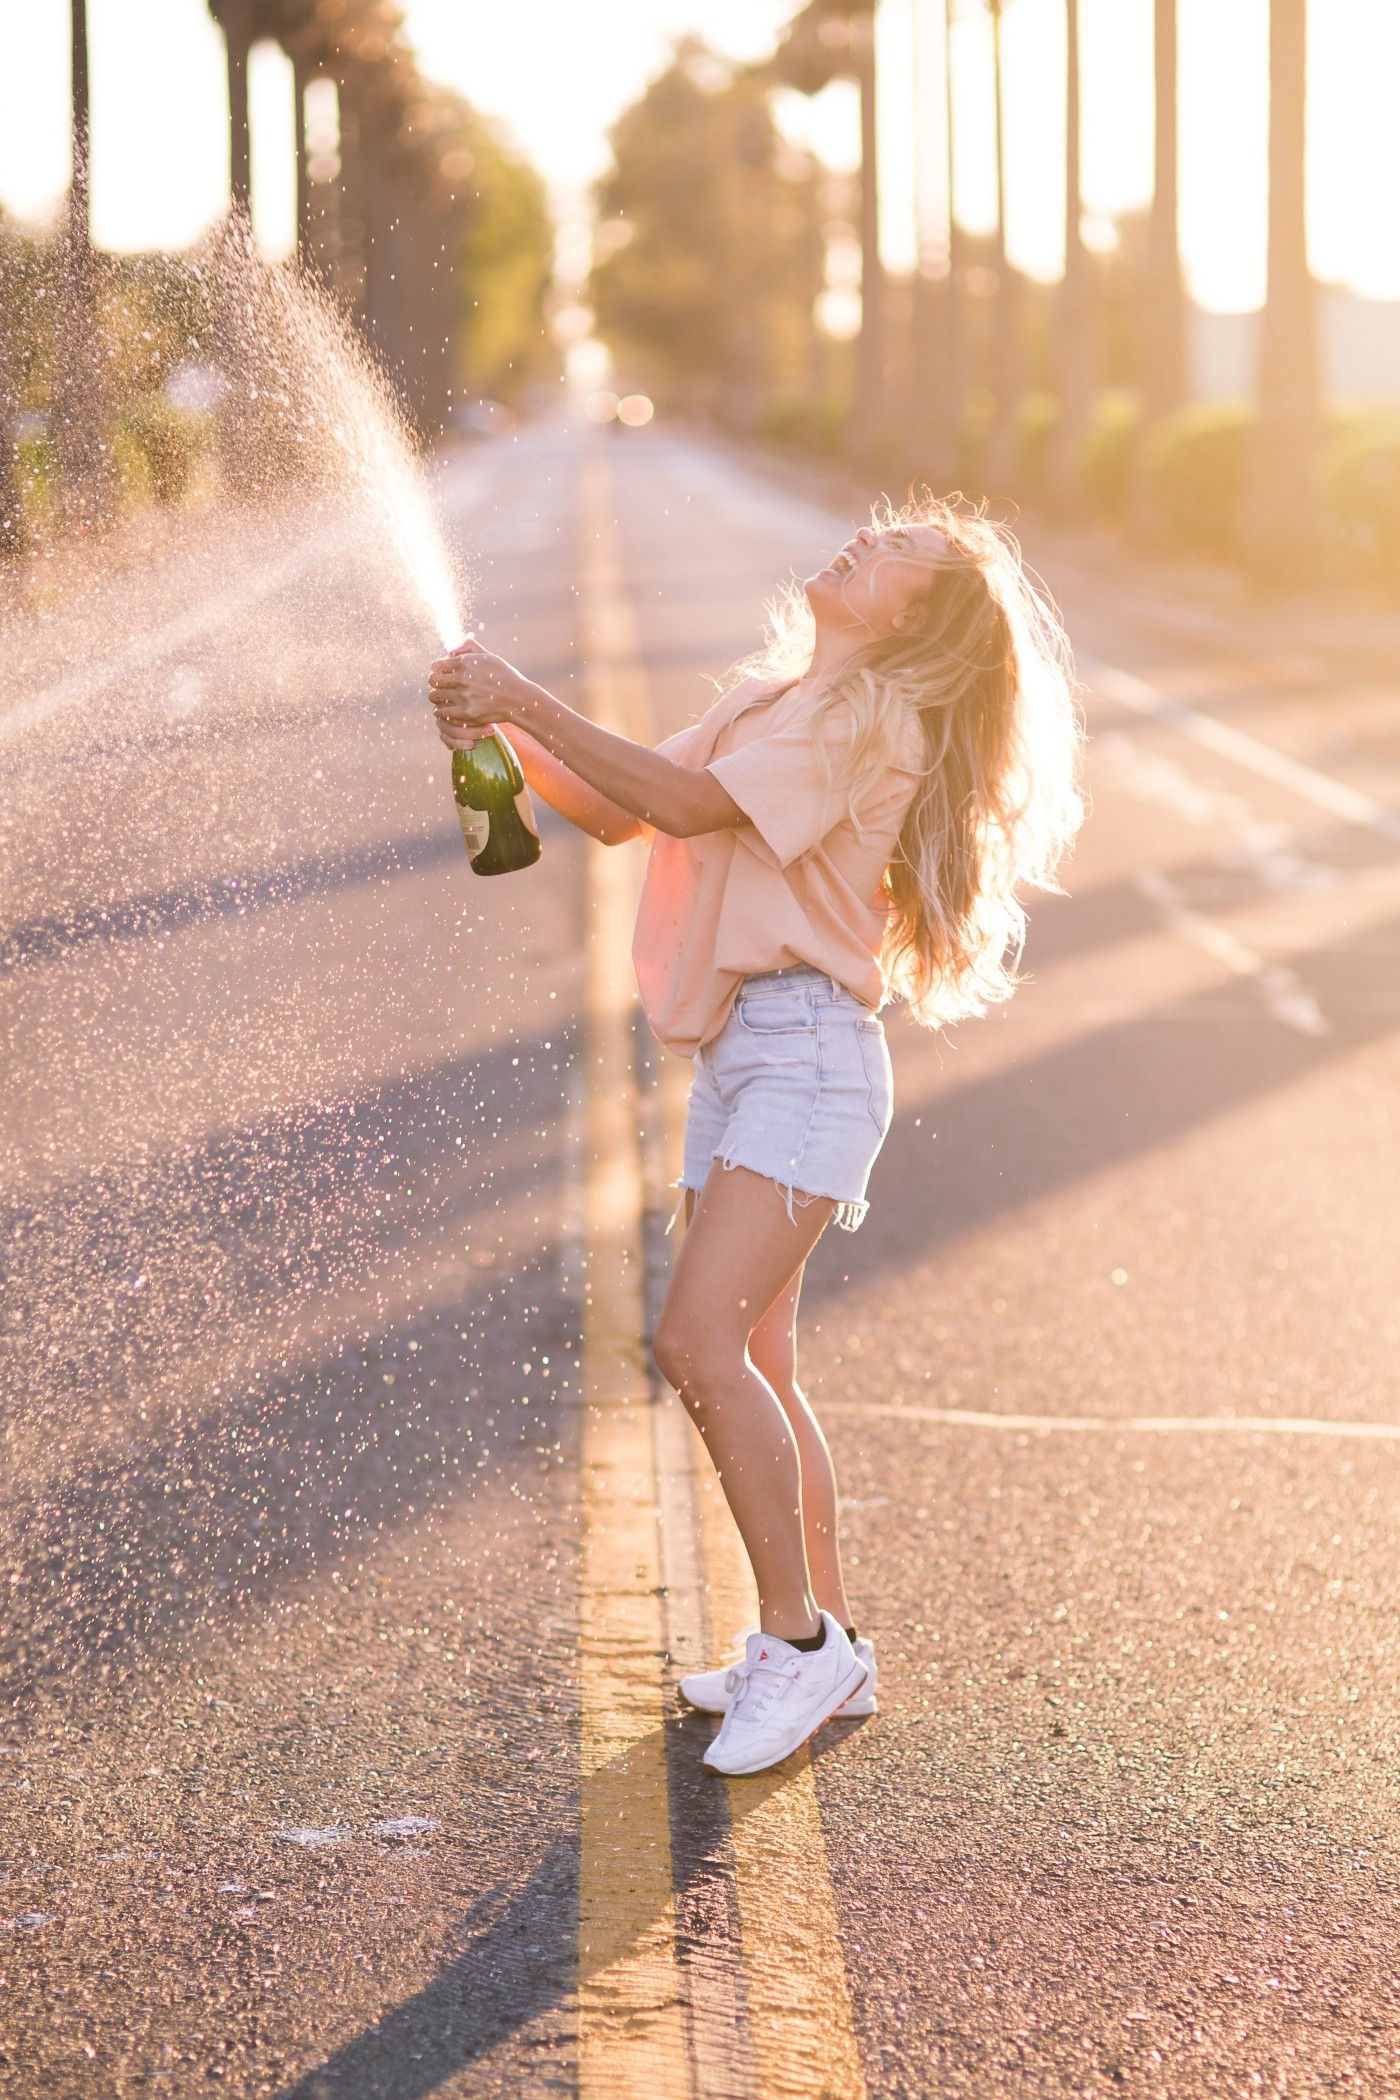 A young woman standing on the road and opening a champaign bottle, joy on her face.